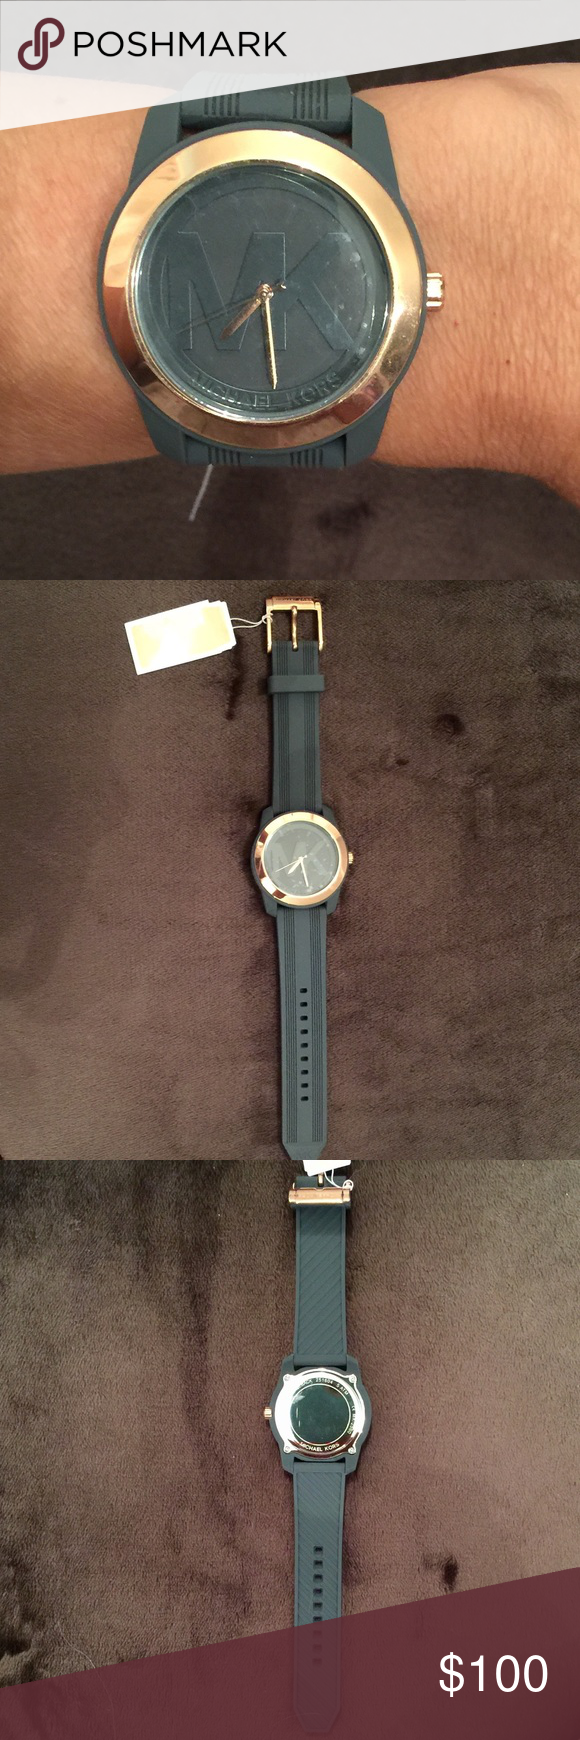 Watch,MK What a cool timepiece 😎 gray silicone with rose colored hardware.MK on the face. Box included.  FIRM🌸 Michael Kors Accessories Watches